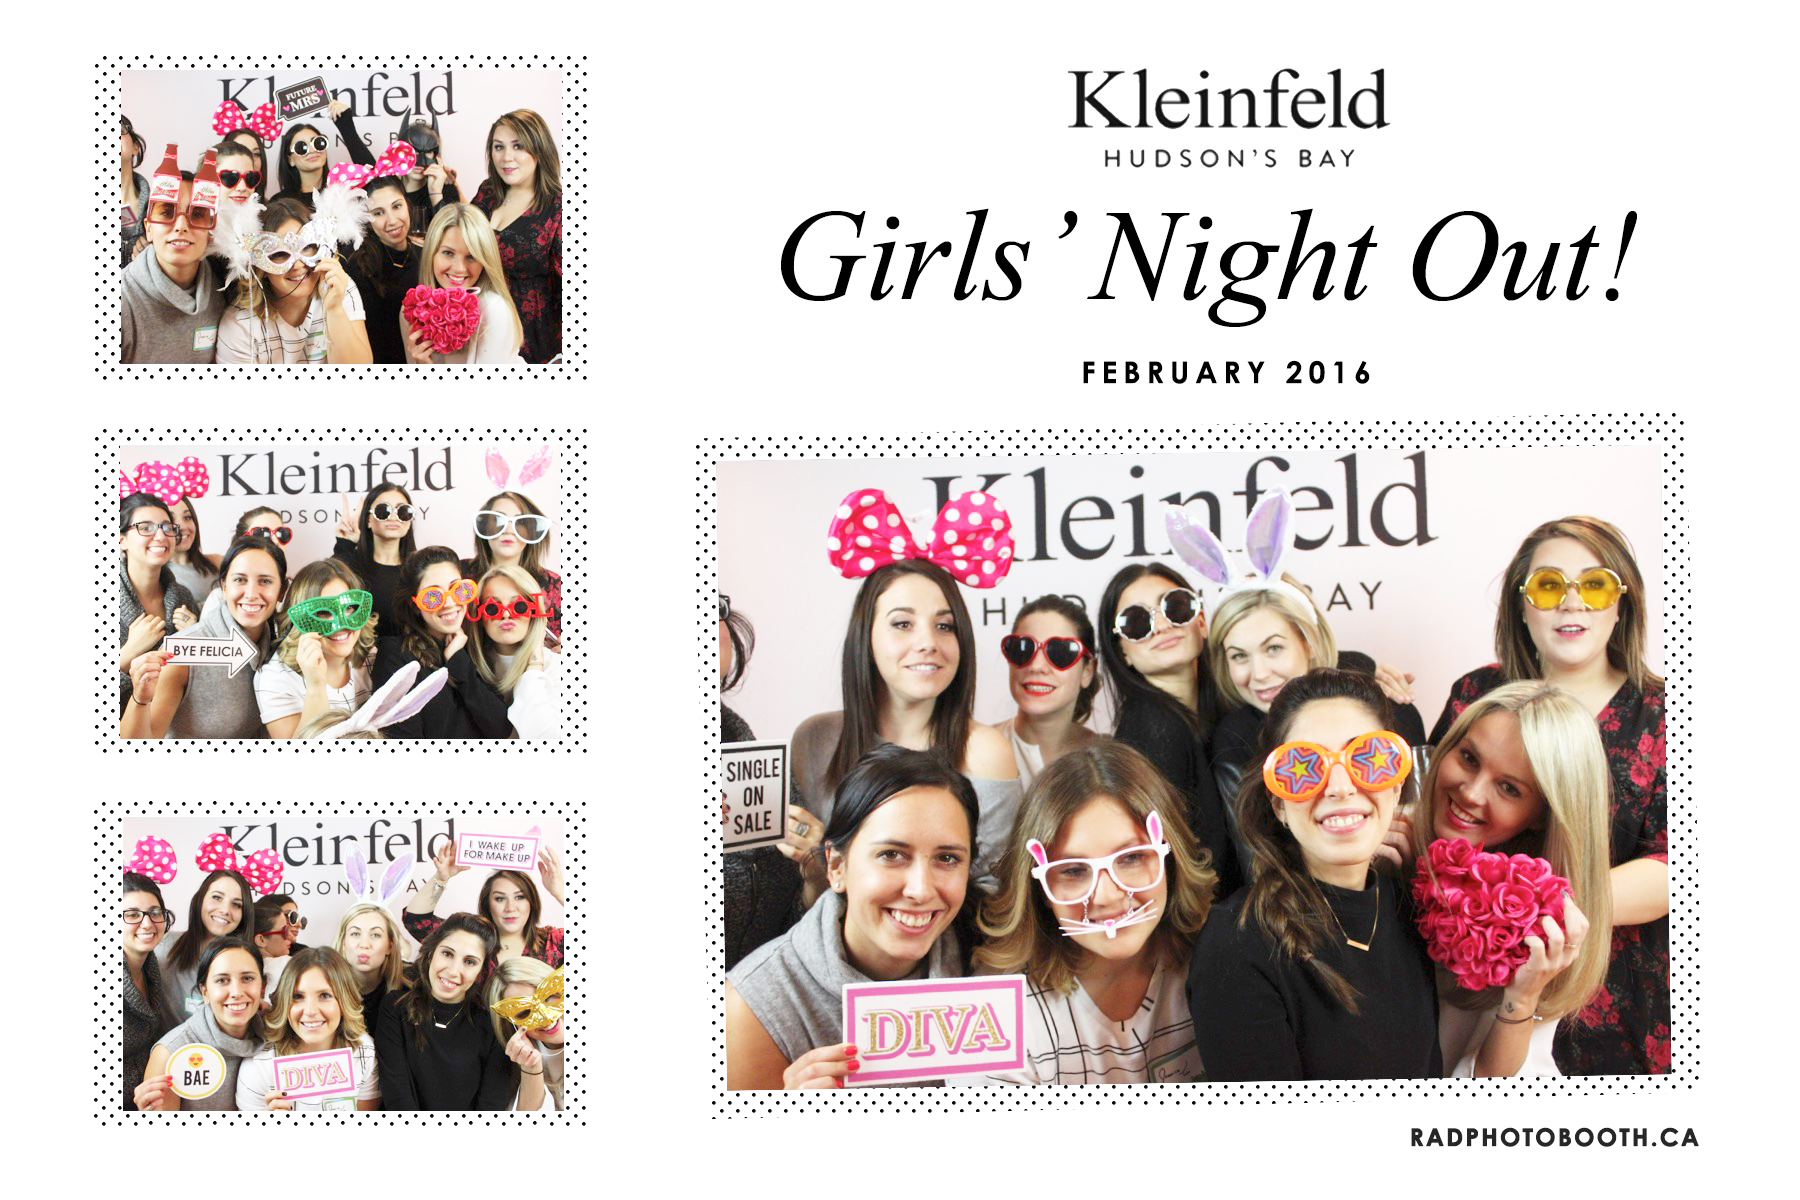 kleinfeld girls night out bridesmaid event